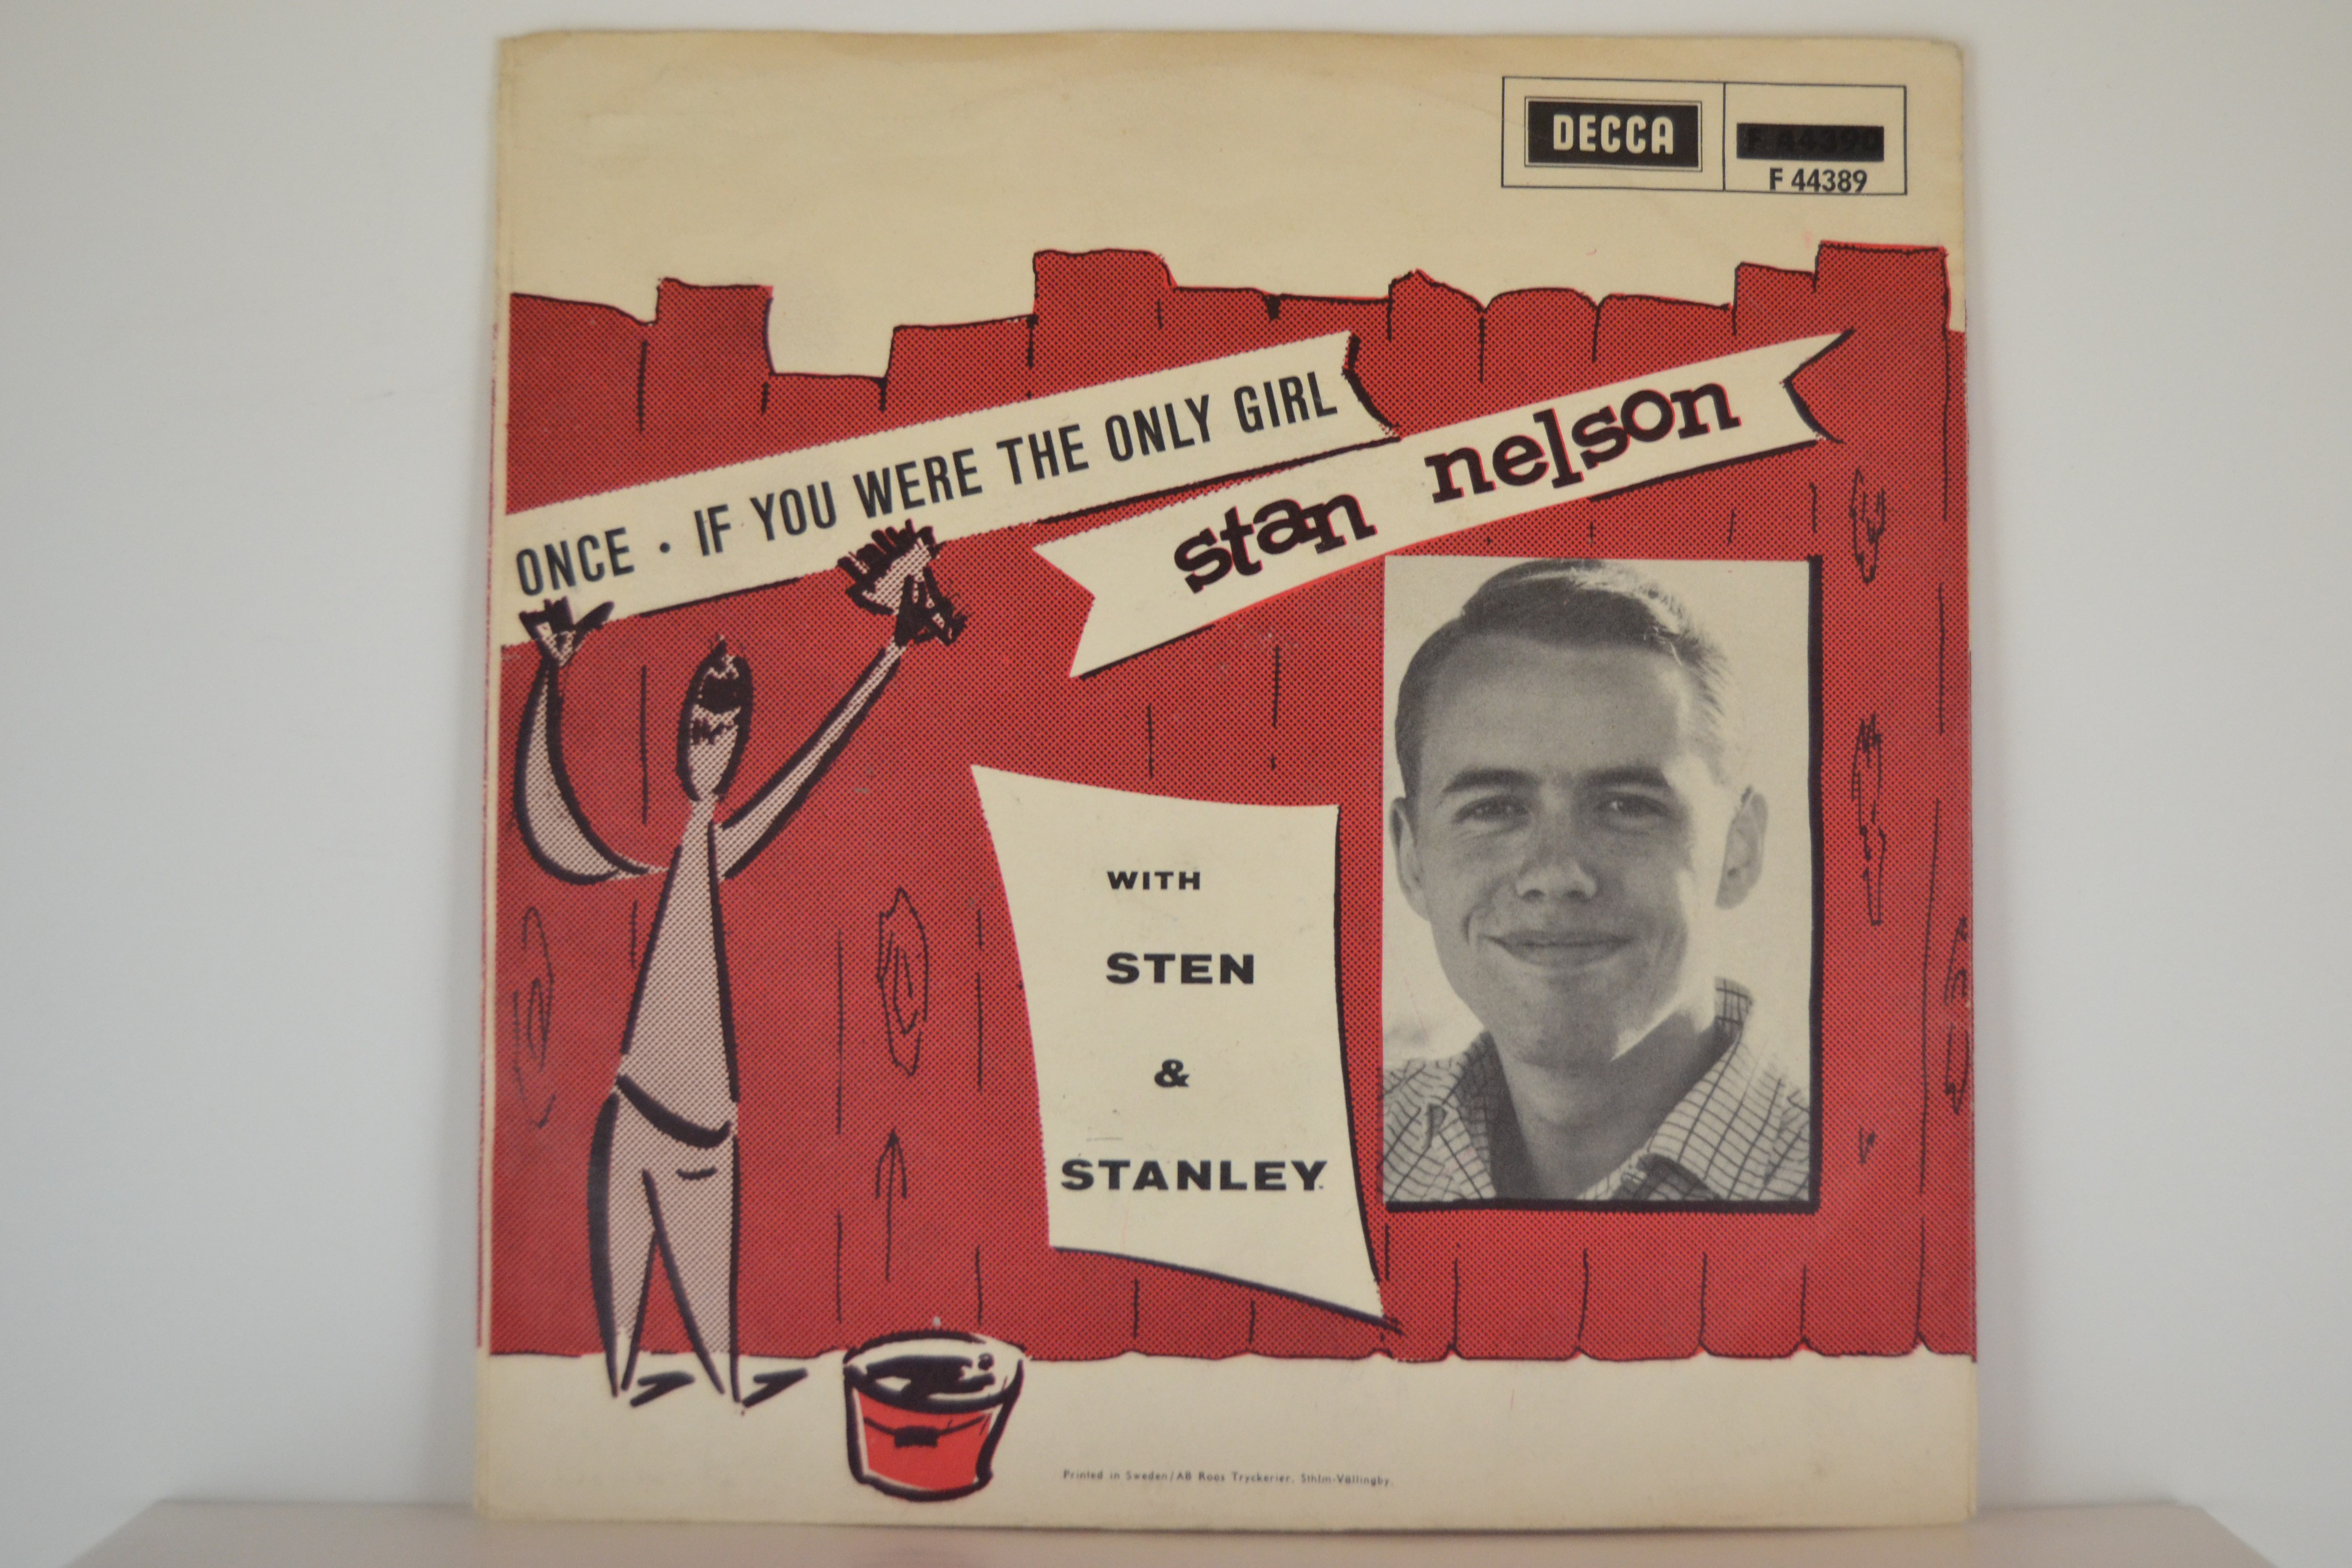 STEN NILSSON & STEN & STANLEY (som STAN NELSON) : Once / If you were the only girl